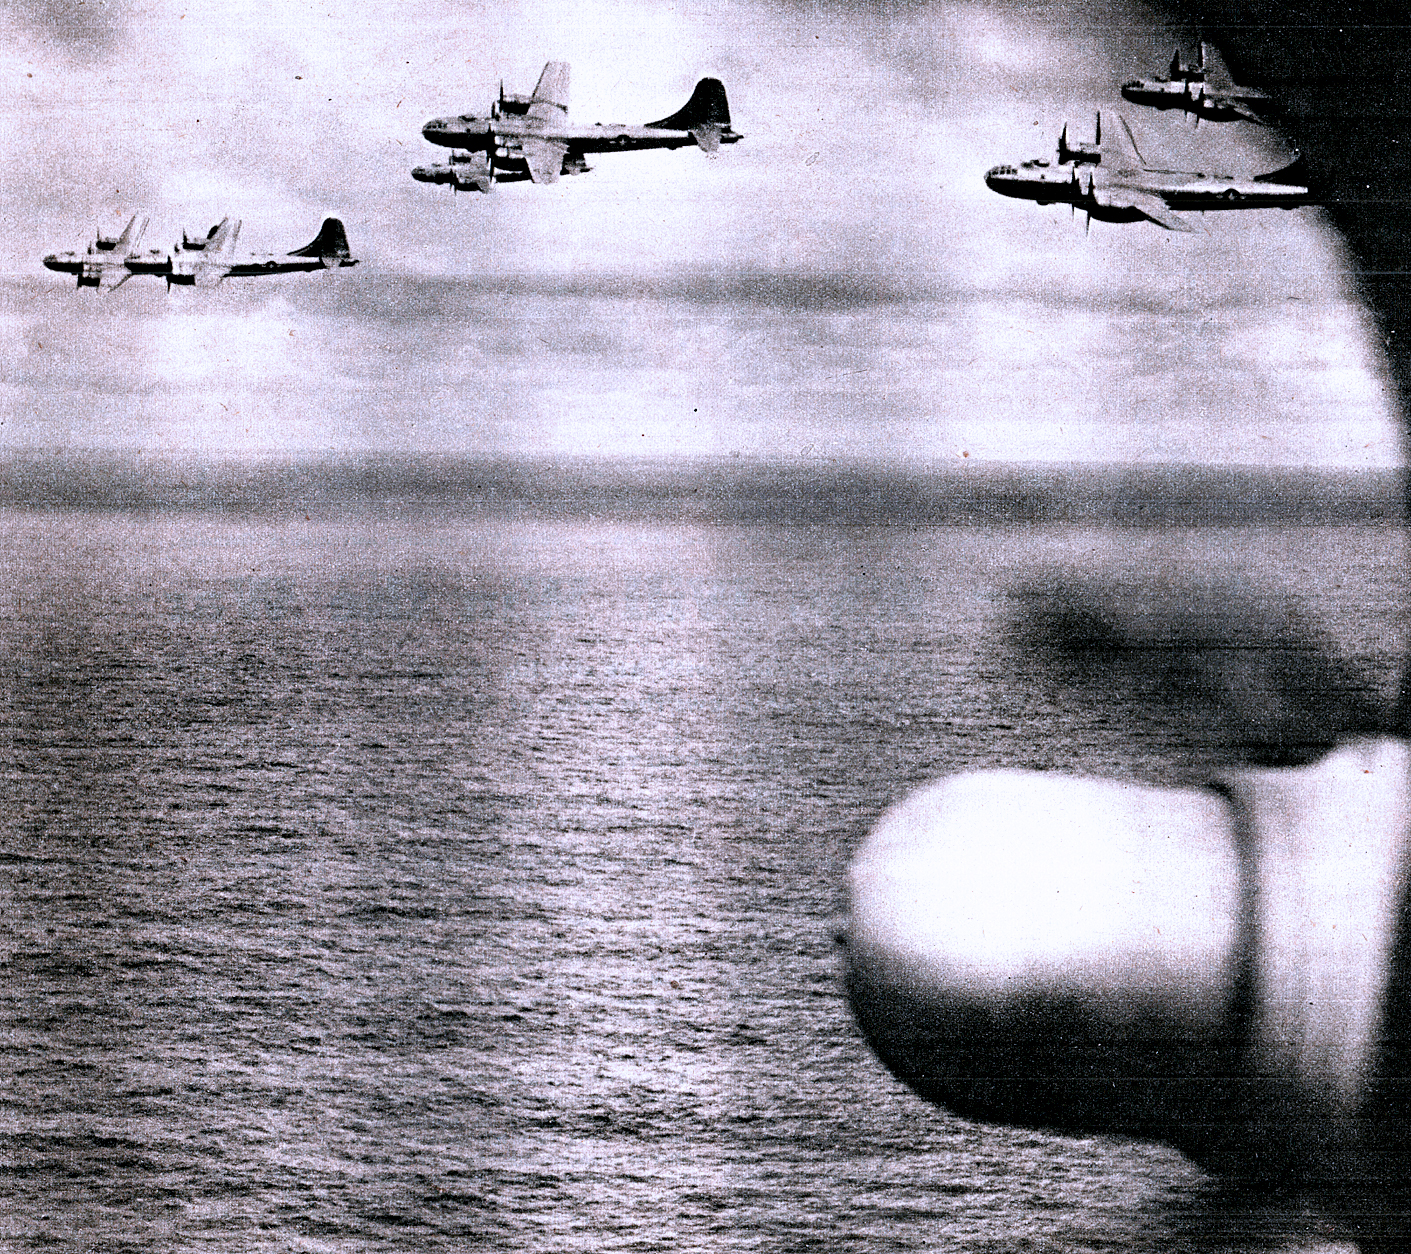 Somewhere In The South Pacific - 1944